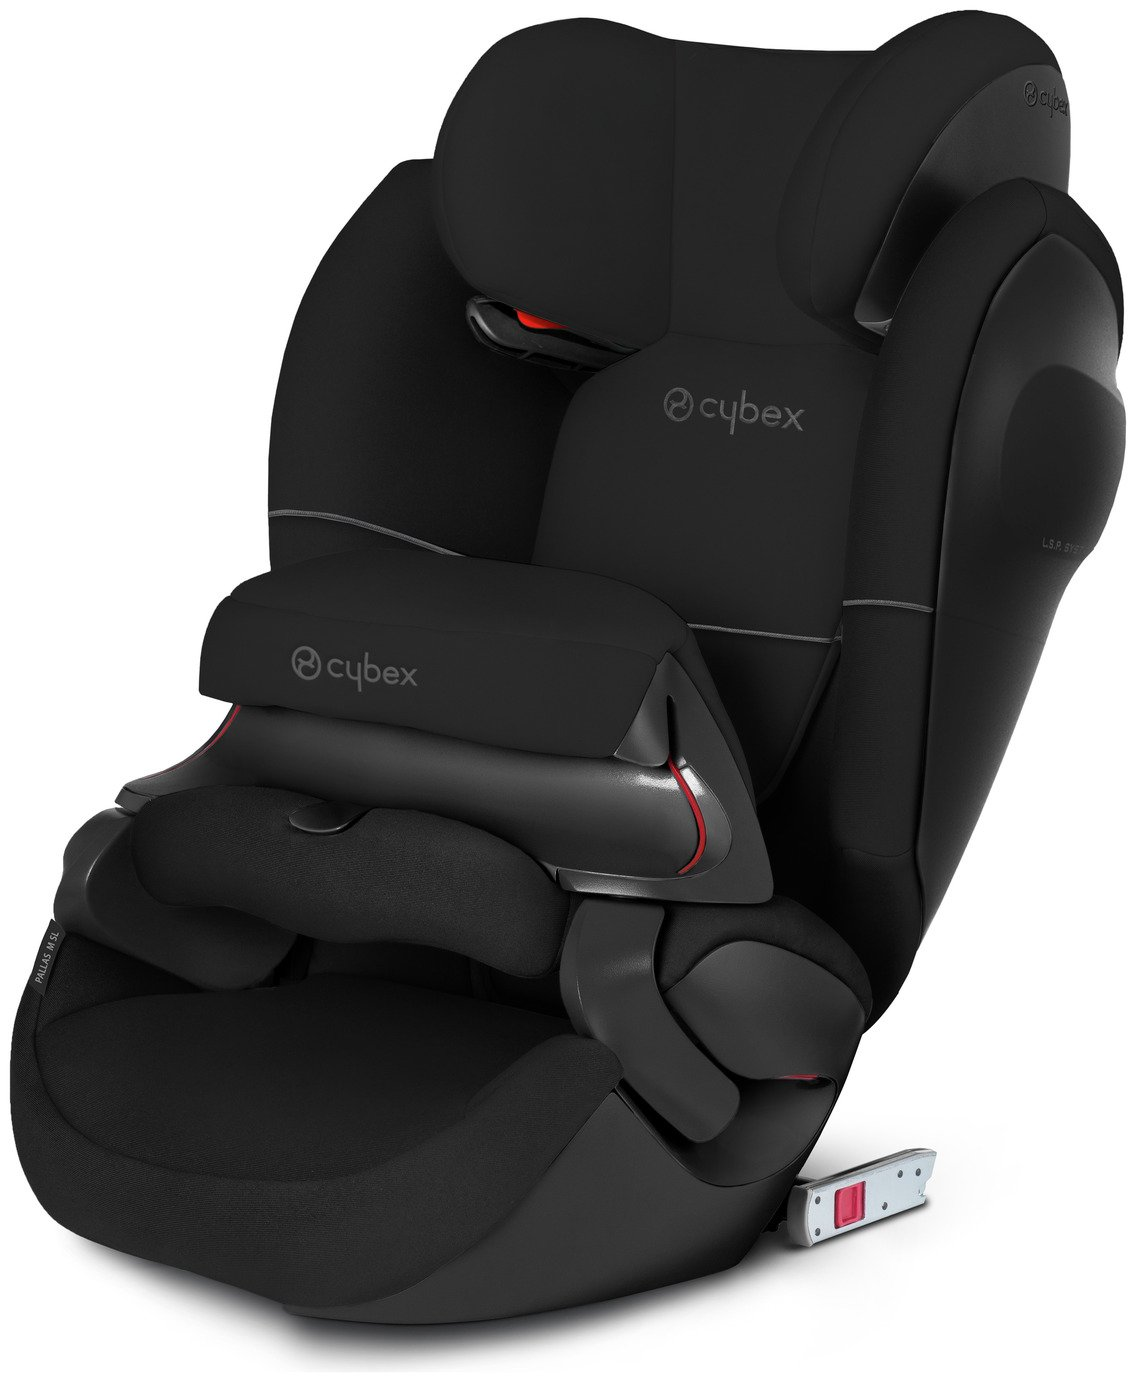 cybex find offers online and compare prices at wunderstore. Black Bedroom Furniture Sets. Home Design Ideas